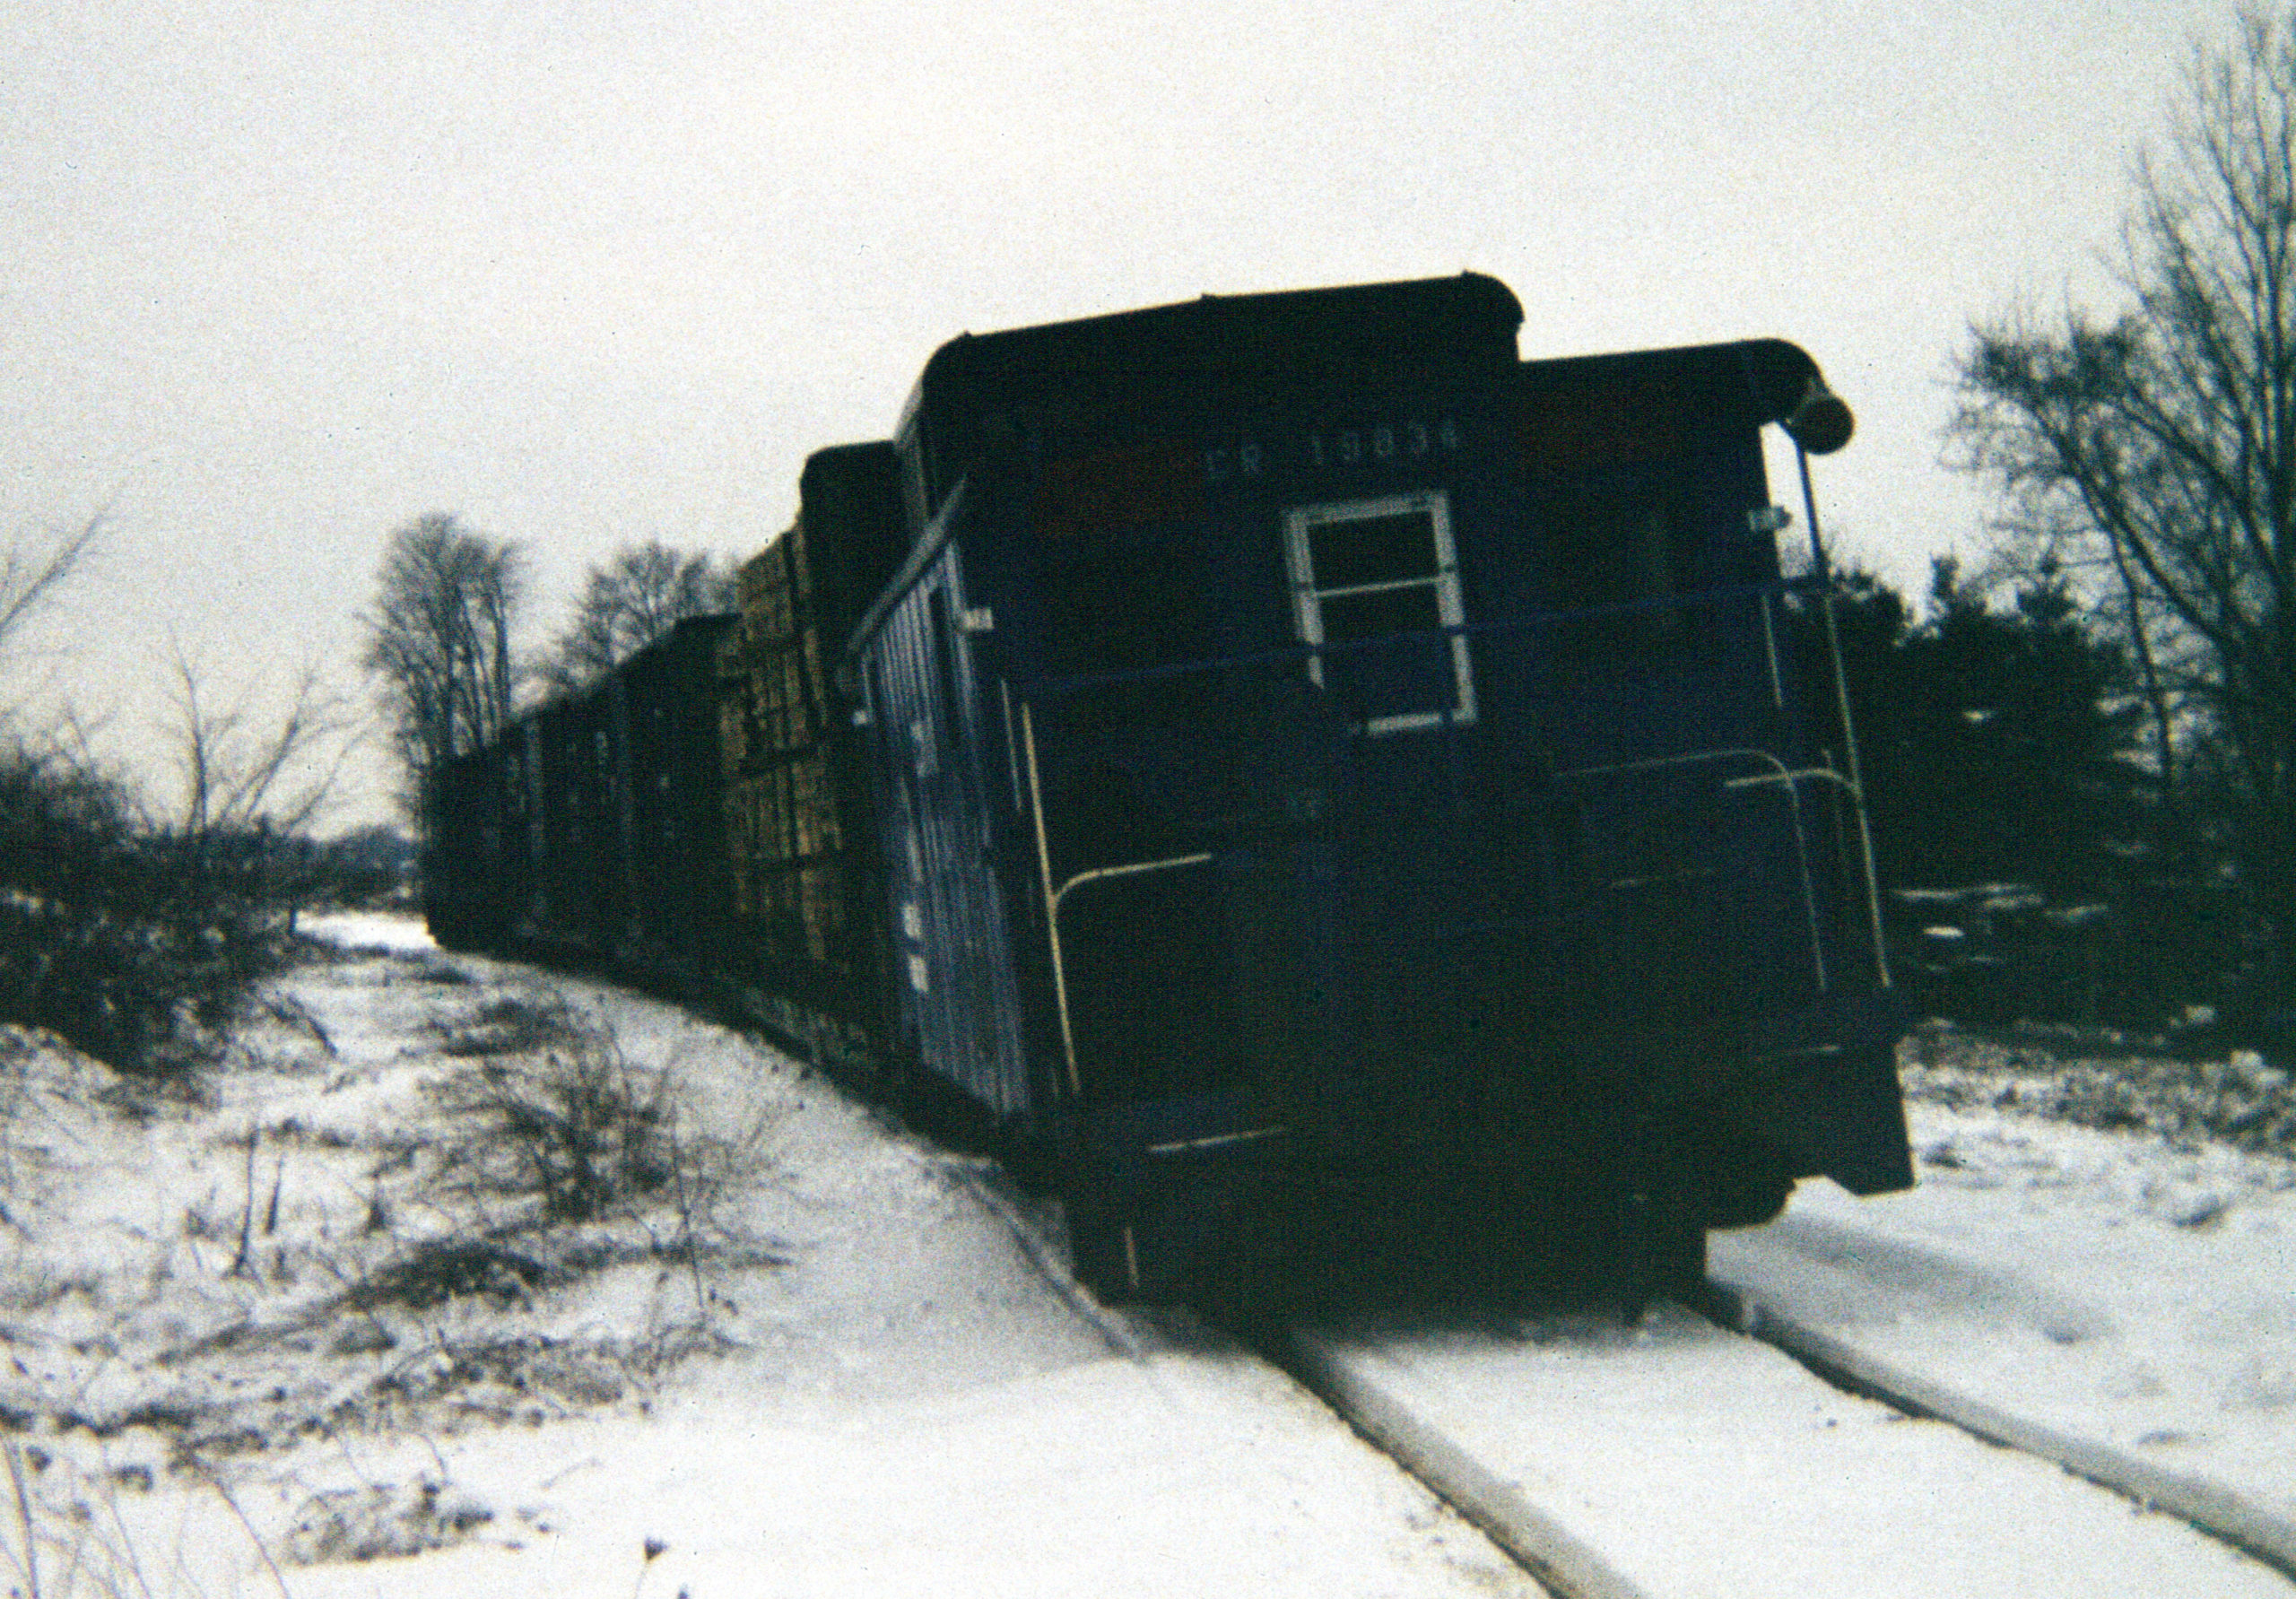 Conrail 19834 brings up the rear of the train at Lenawee Junction, Michigan. (12 December 1981)